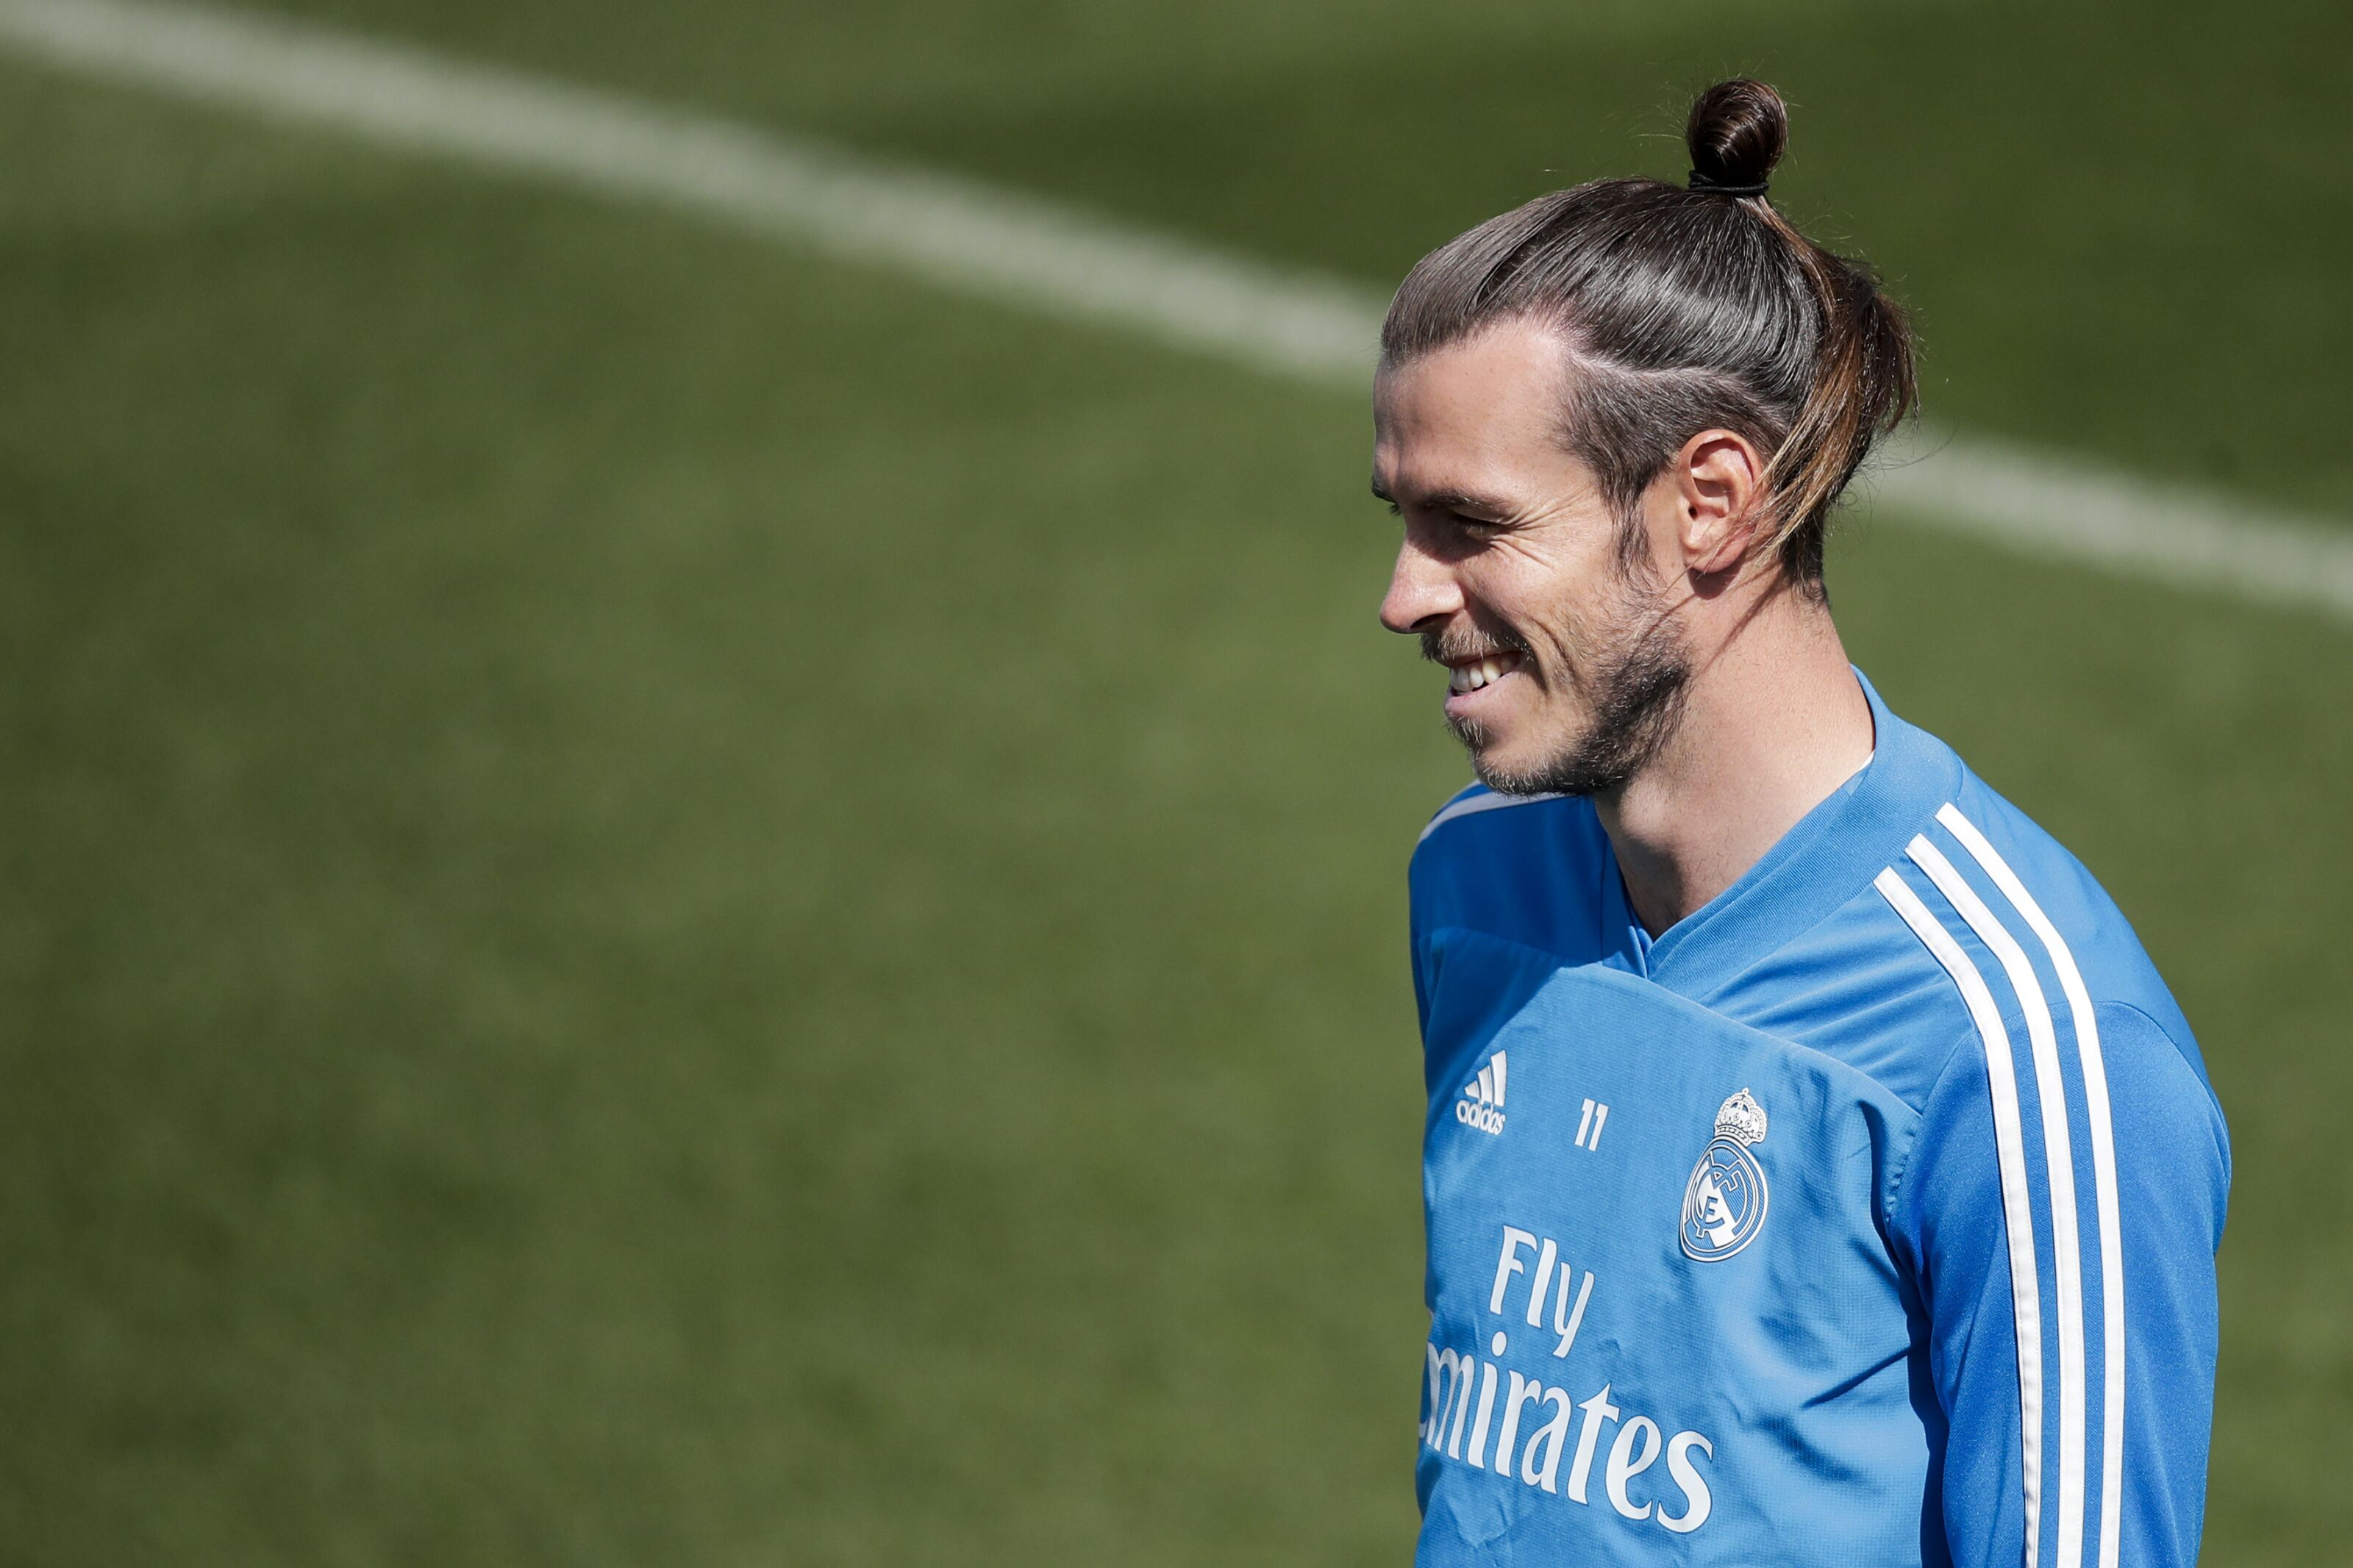 Real Madrid will have to lower Gareth Bale asking price considerably